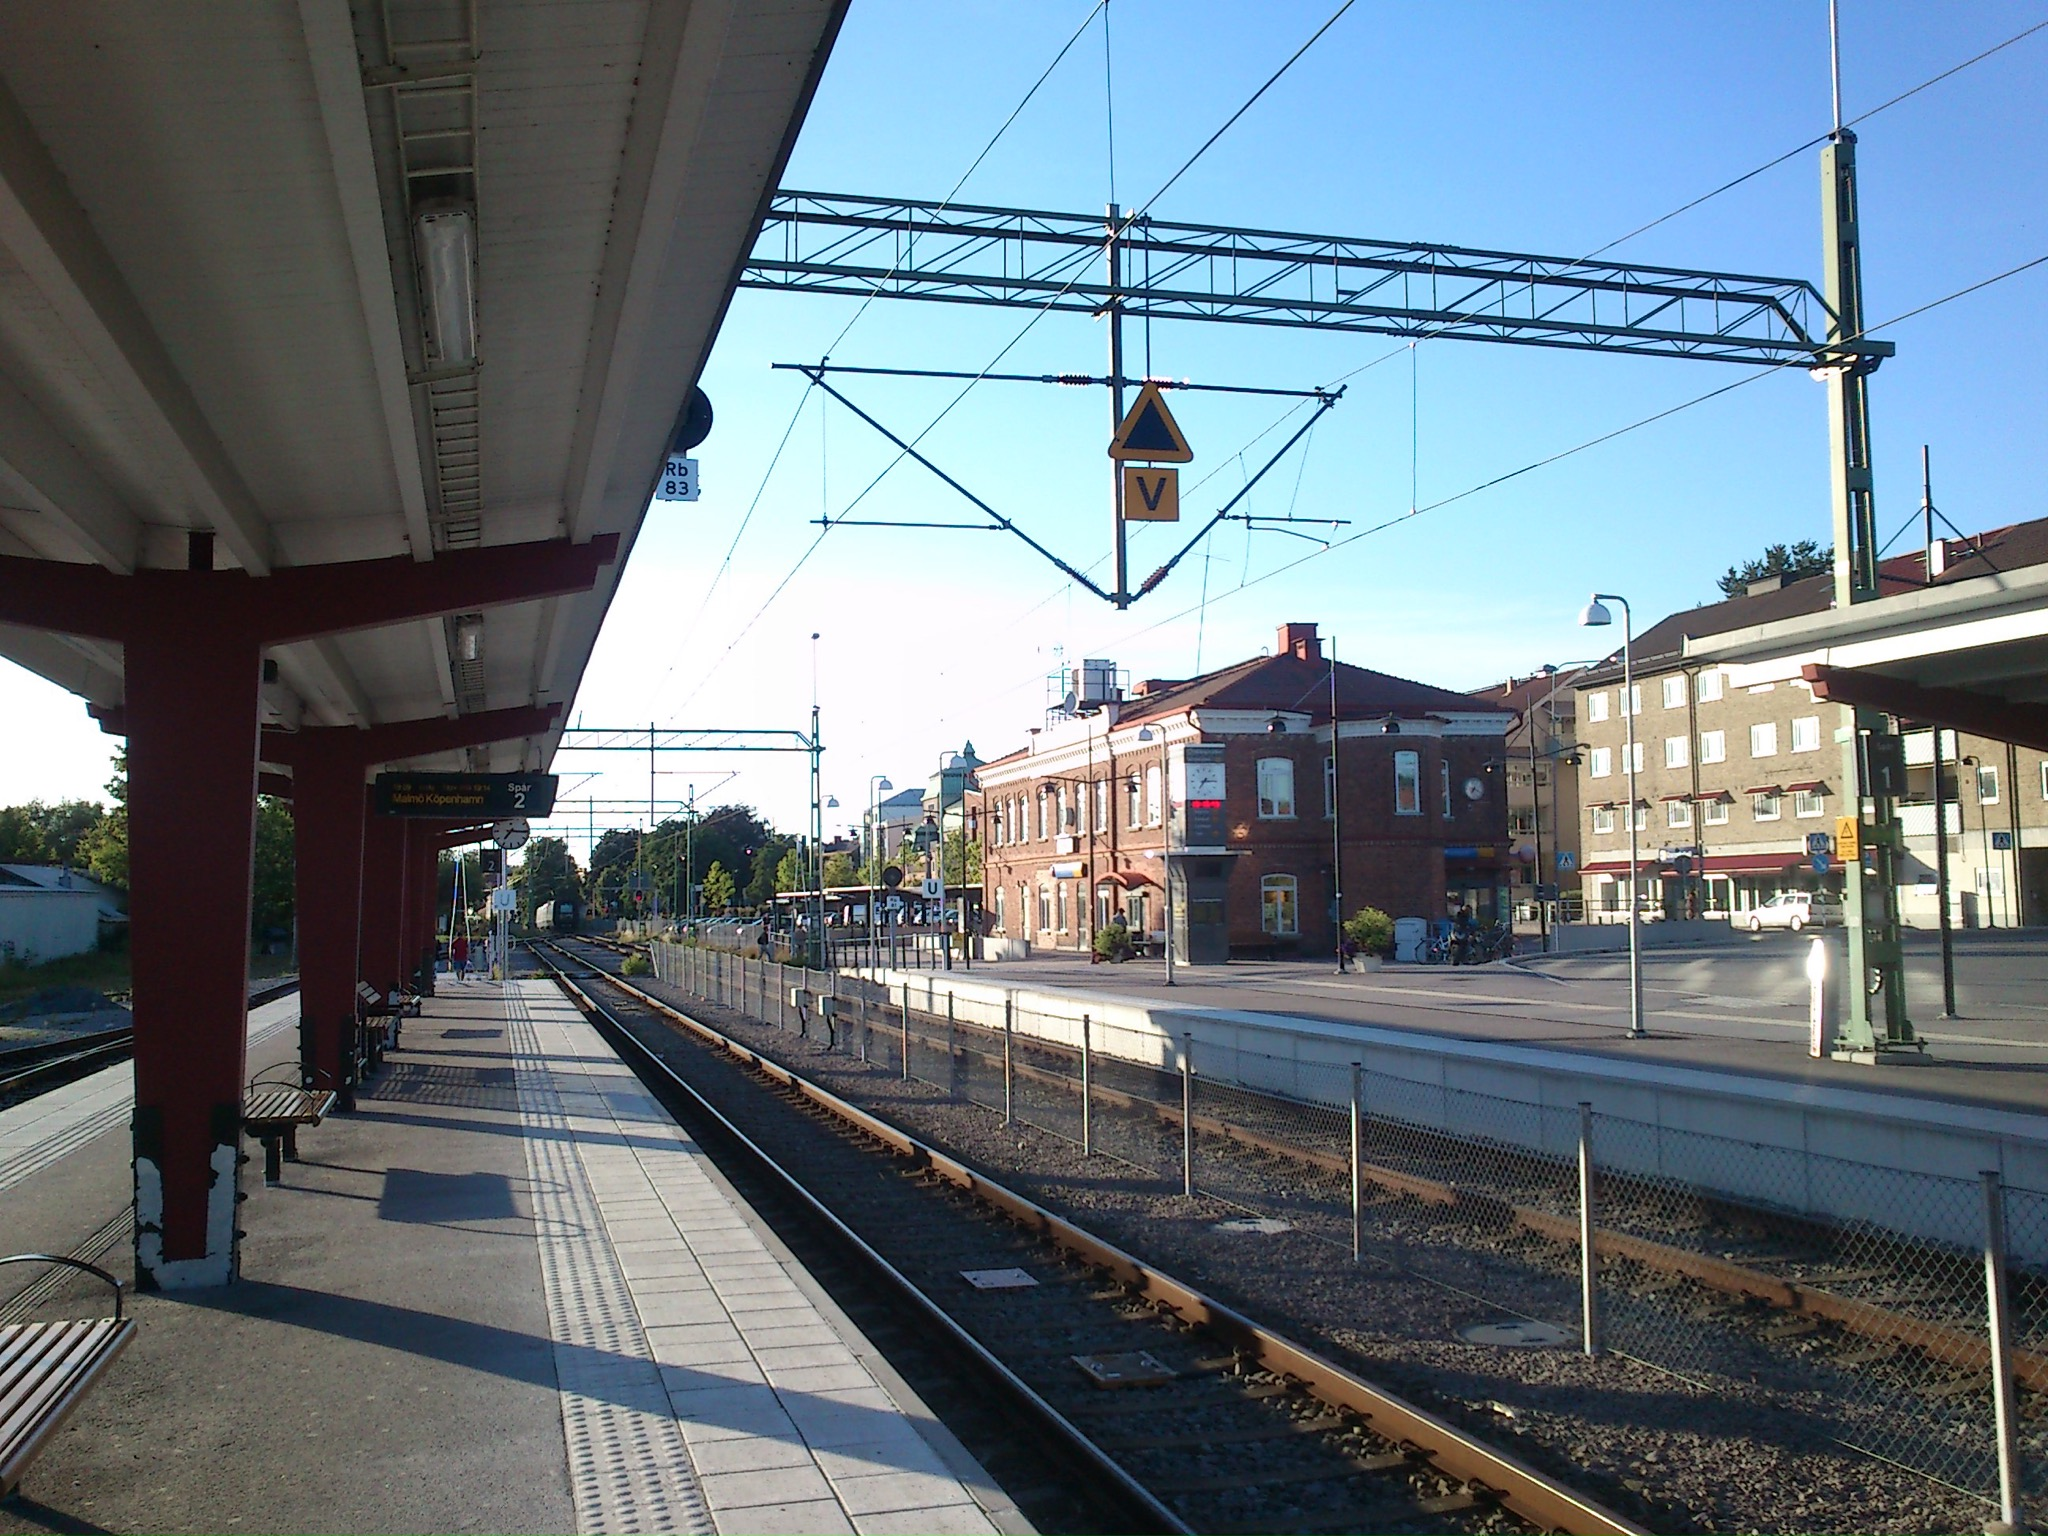 Ronneby station